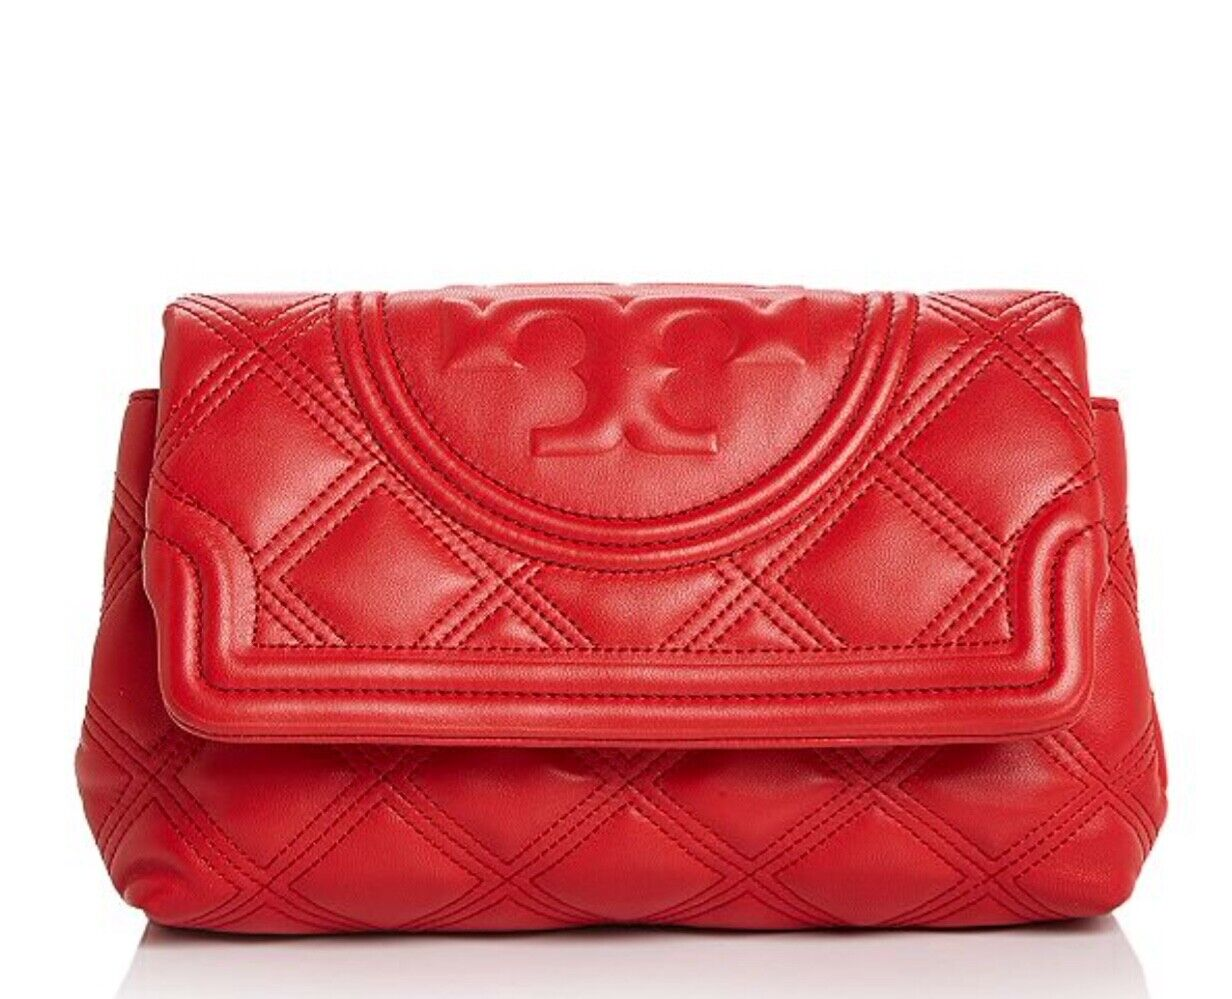 NWT TORY BURCH 398 BRILLIANT RED FLEMING SOFT LEATHER CLUTCH BAG